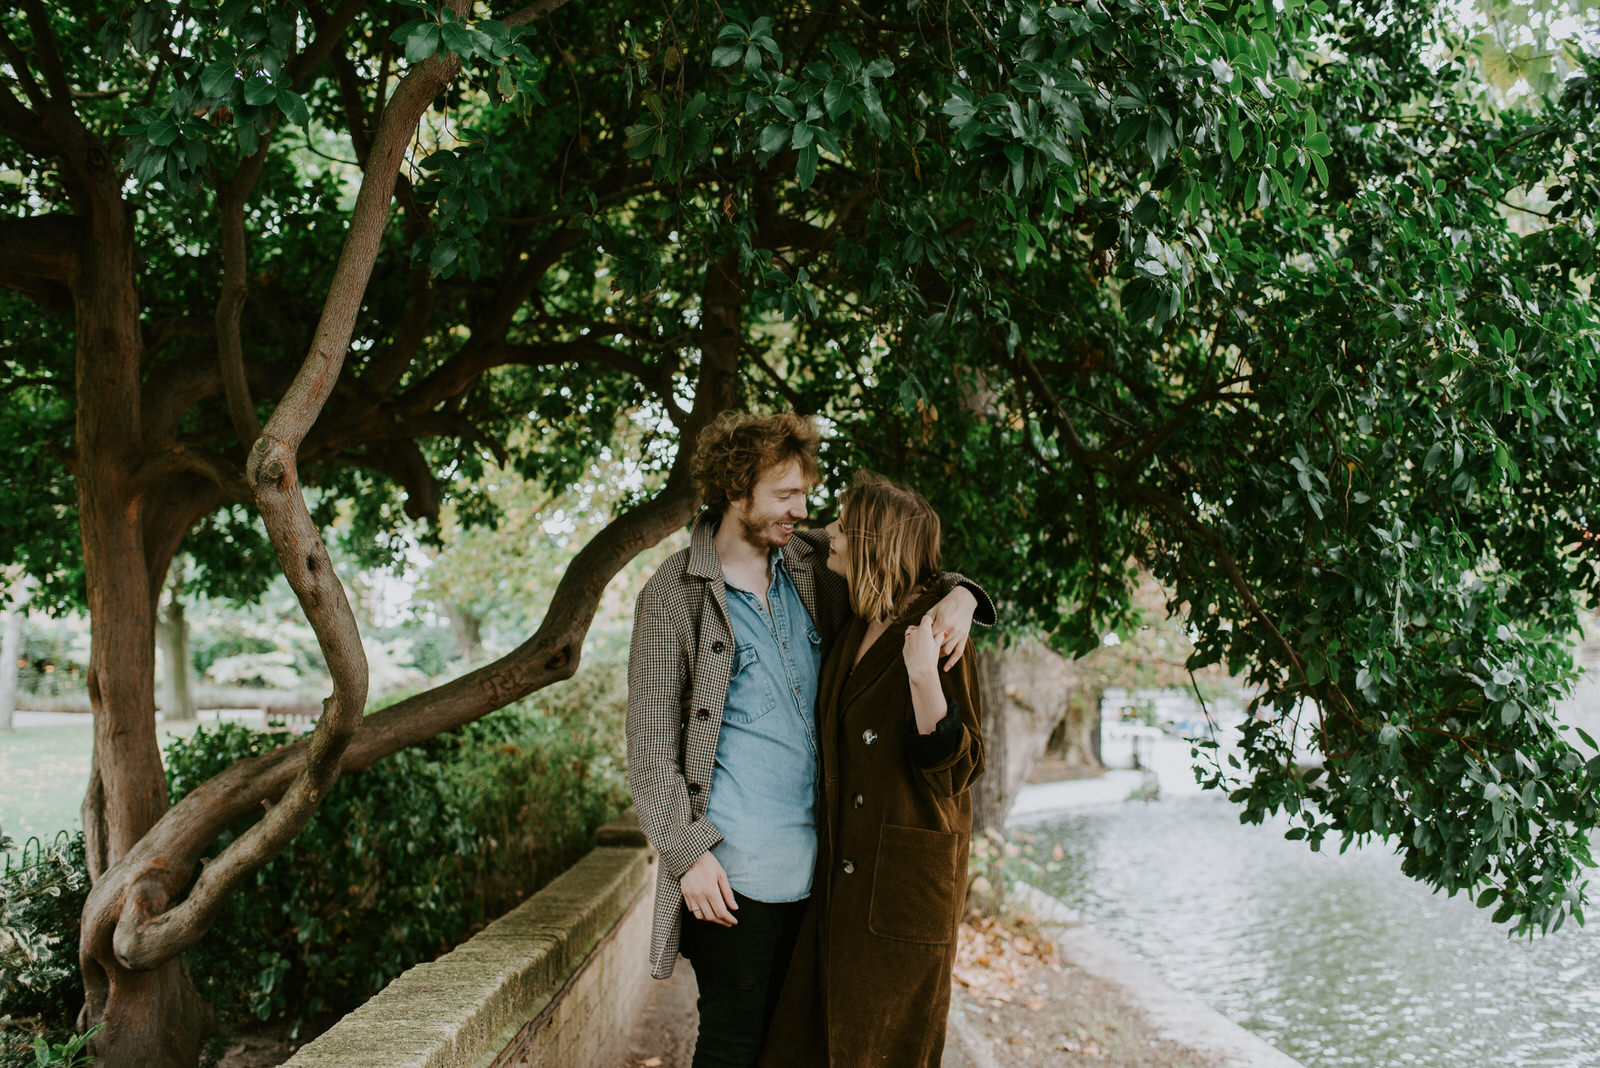 Olivia_Richard_Engagement_Session (47 of 74).jpg